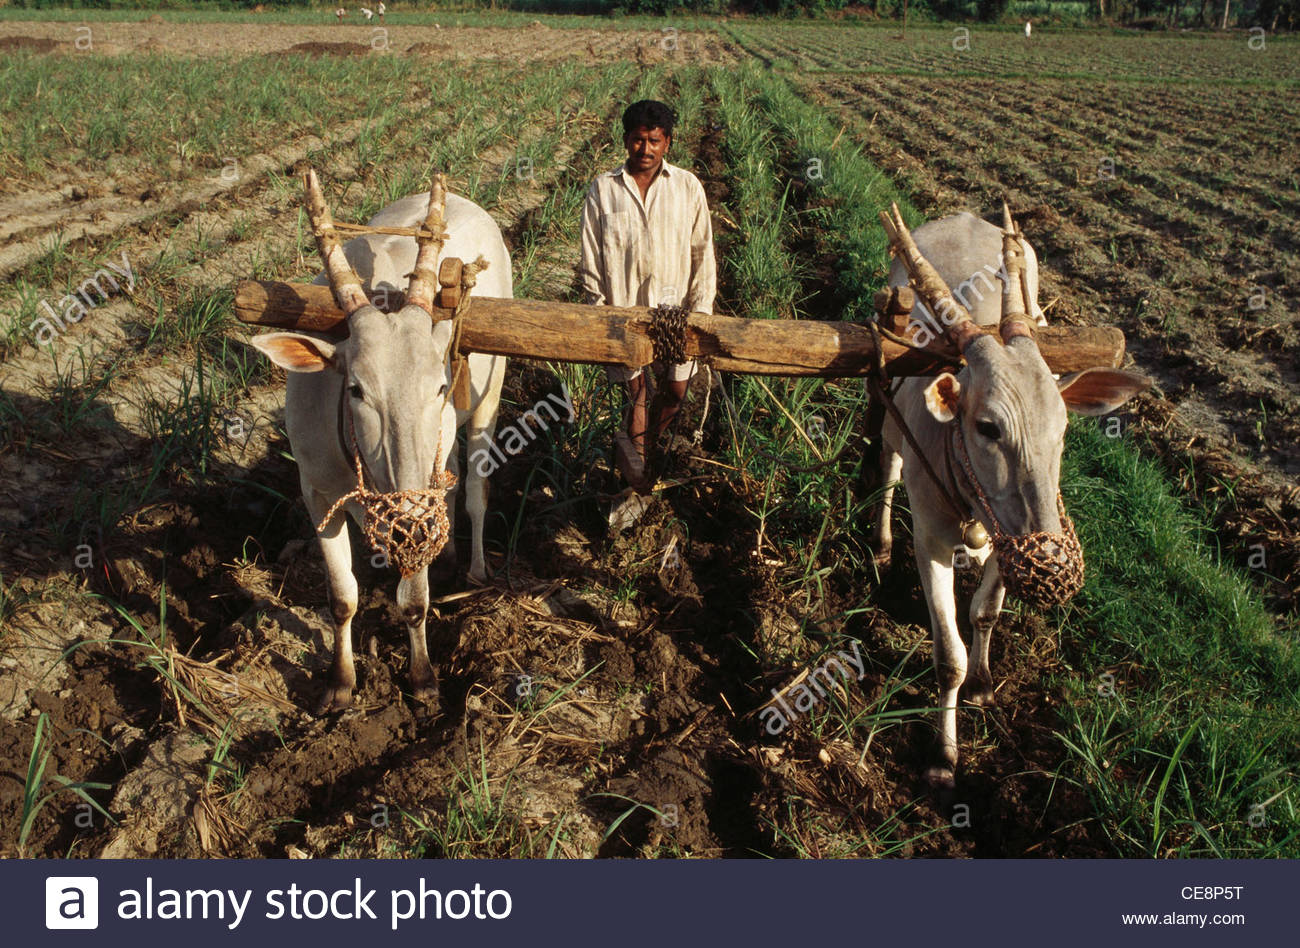 Cattle clipart indian farming #11